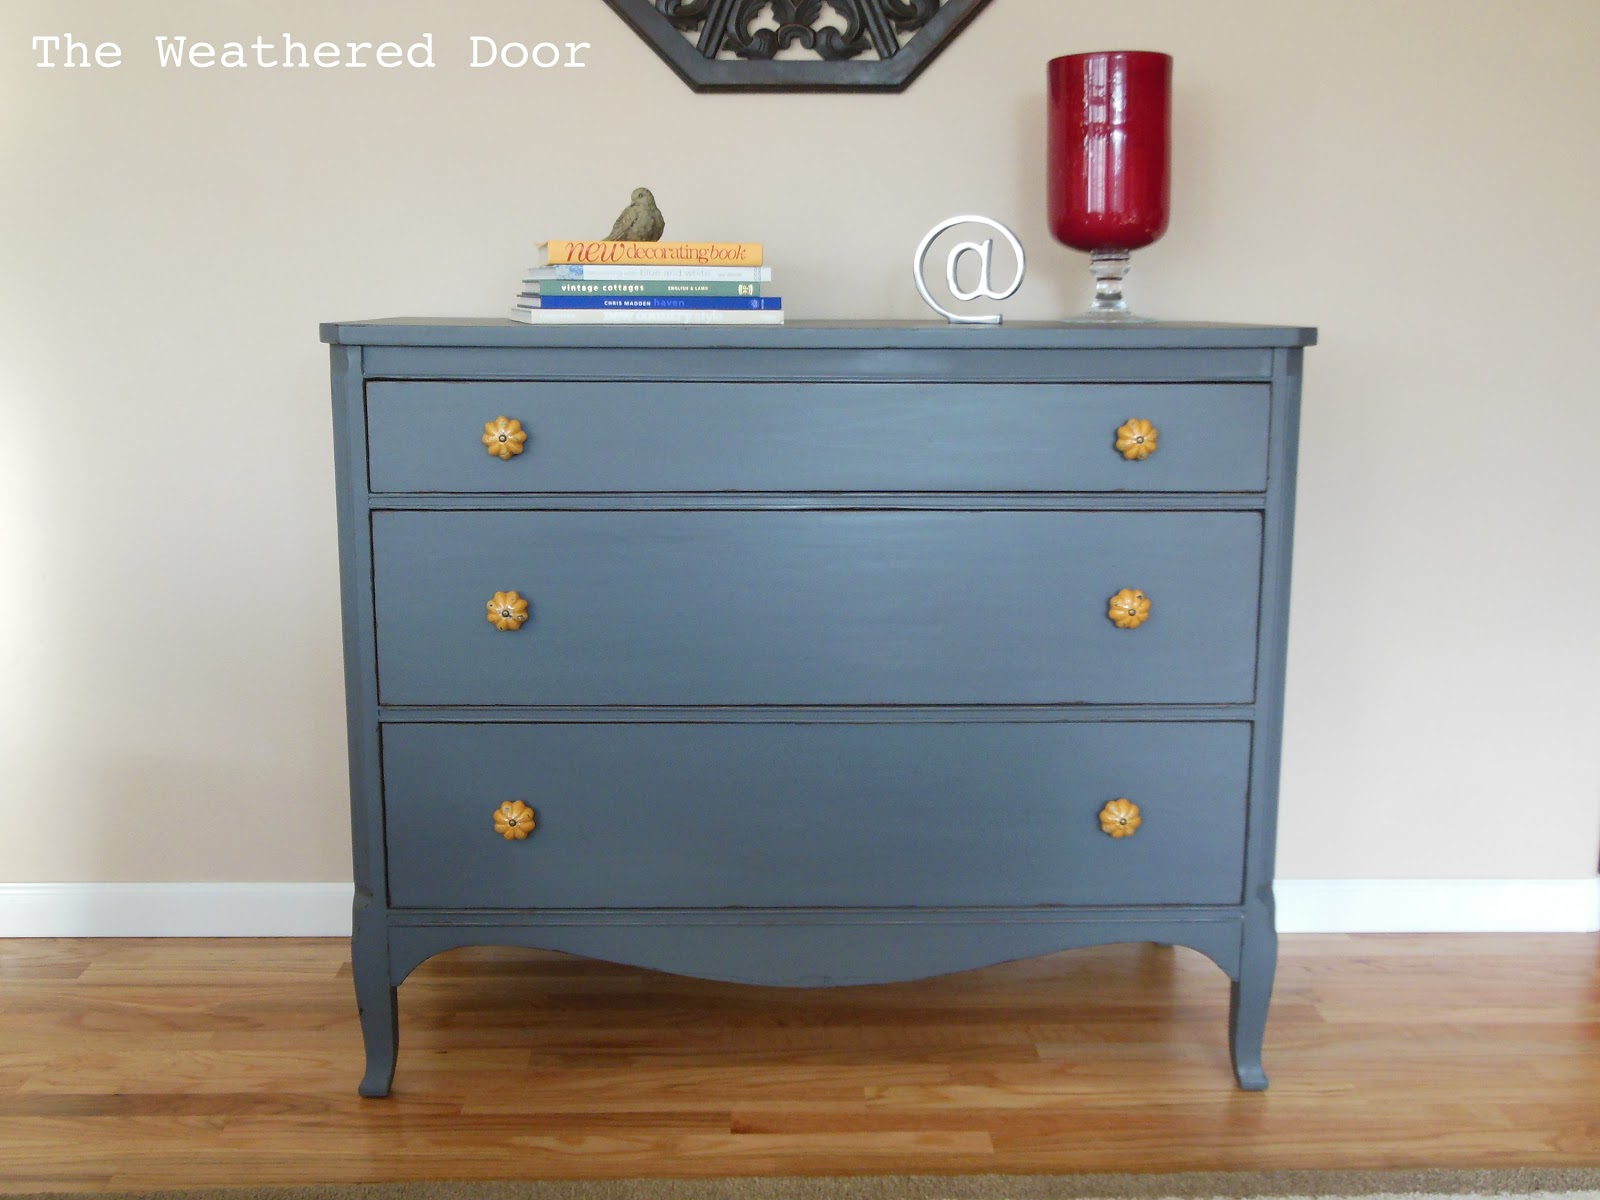 dressers handles in with wood hardware large of dresser our and drawer bedroom antique home pulls knobs for teak image